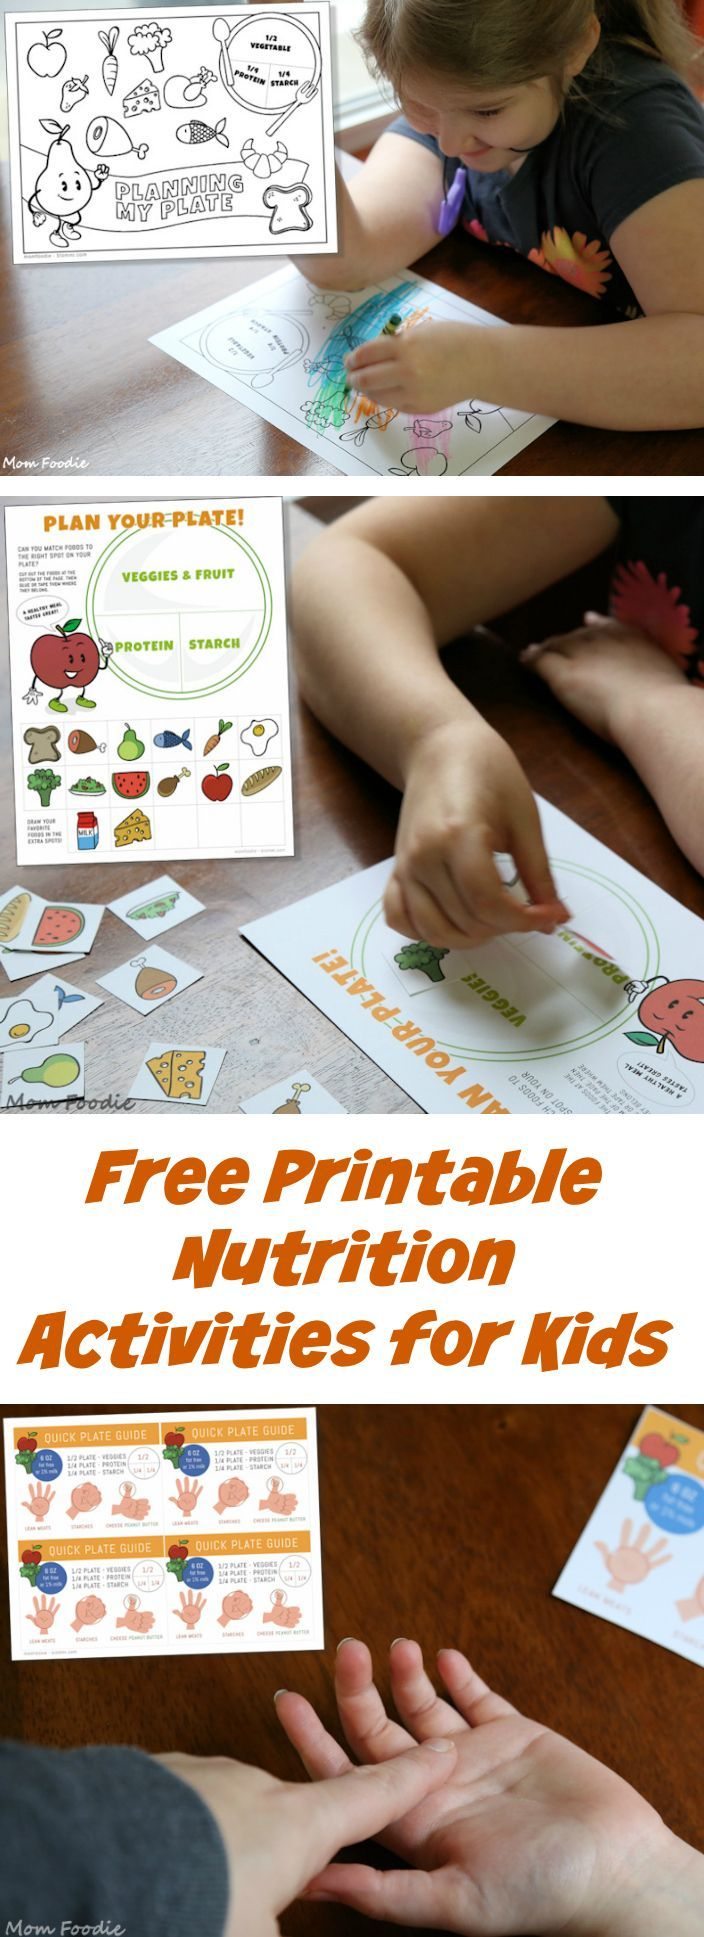 Free Printable Nutrition Activity Sheets for Kids (for 2016 nutrition guidelines)